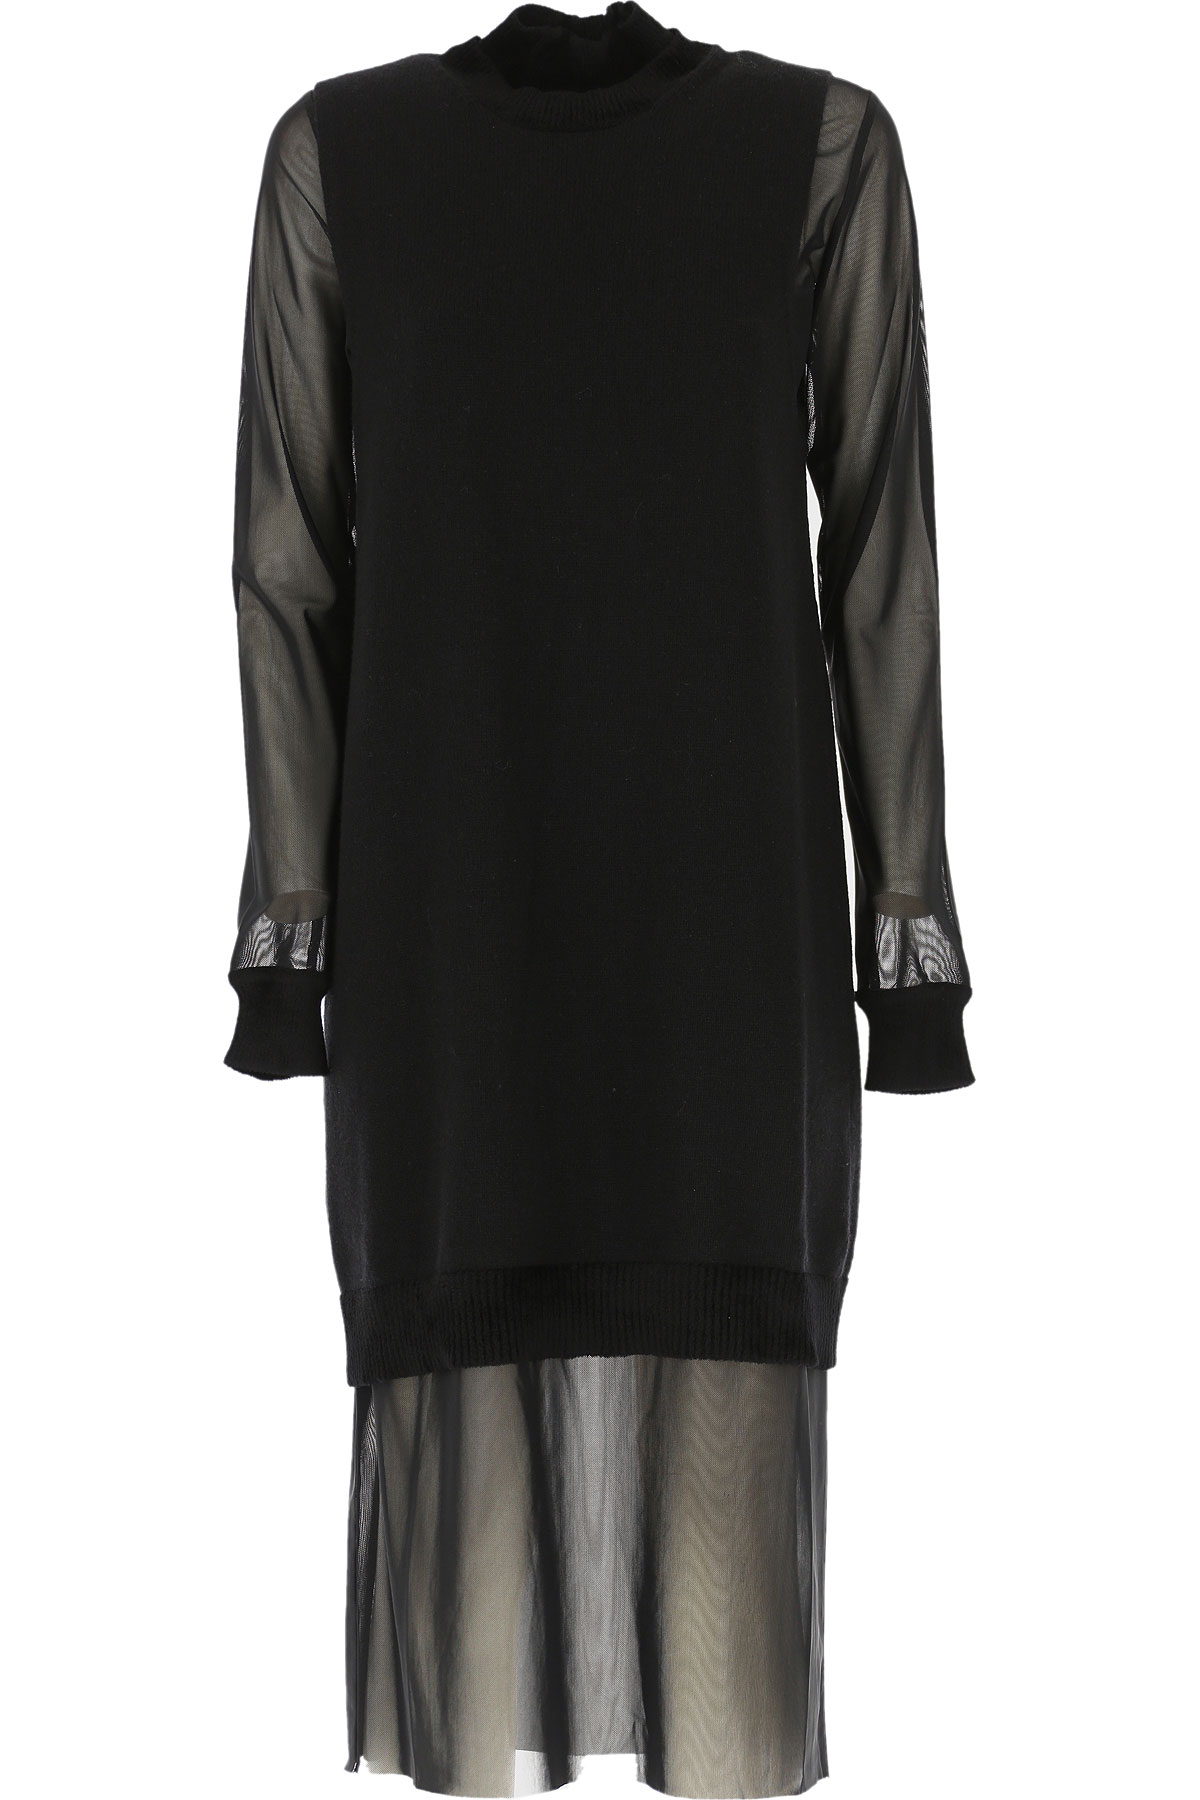 Alexander McQueen McQ Dress for Women, Evening Cocktail Party On Sale, Black, Wool, 2019, 4 6